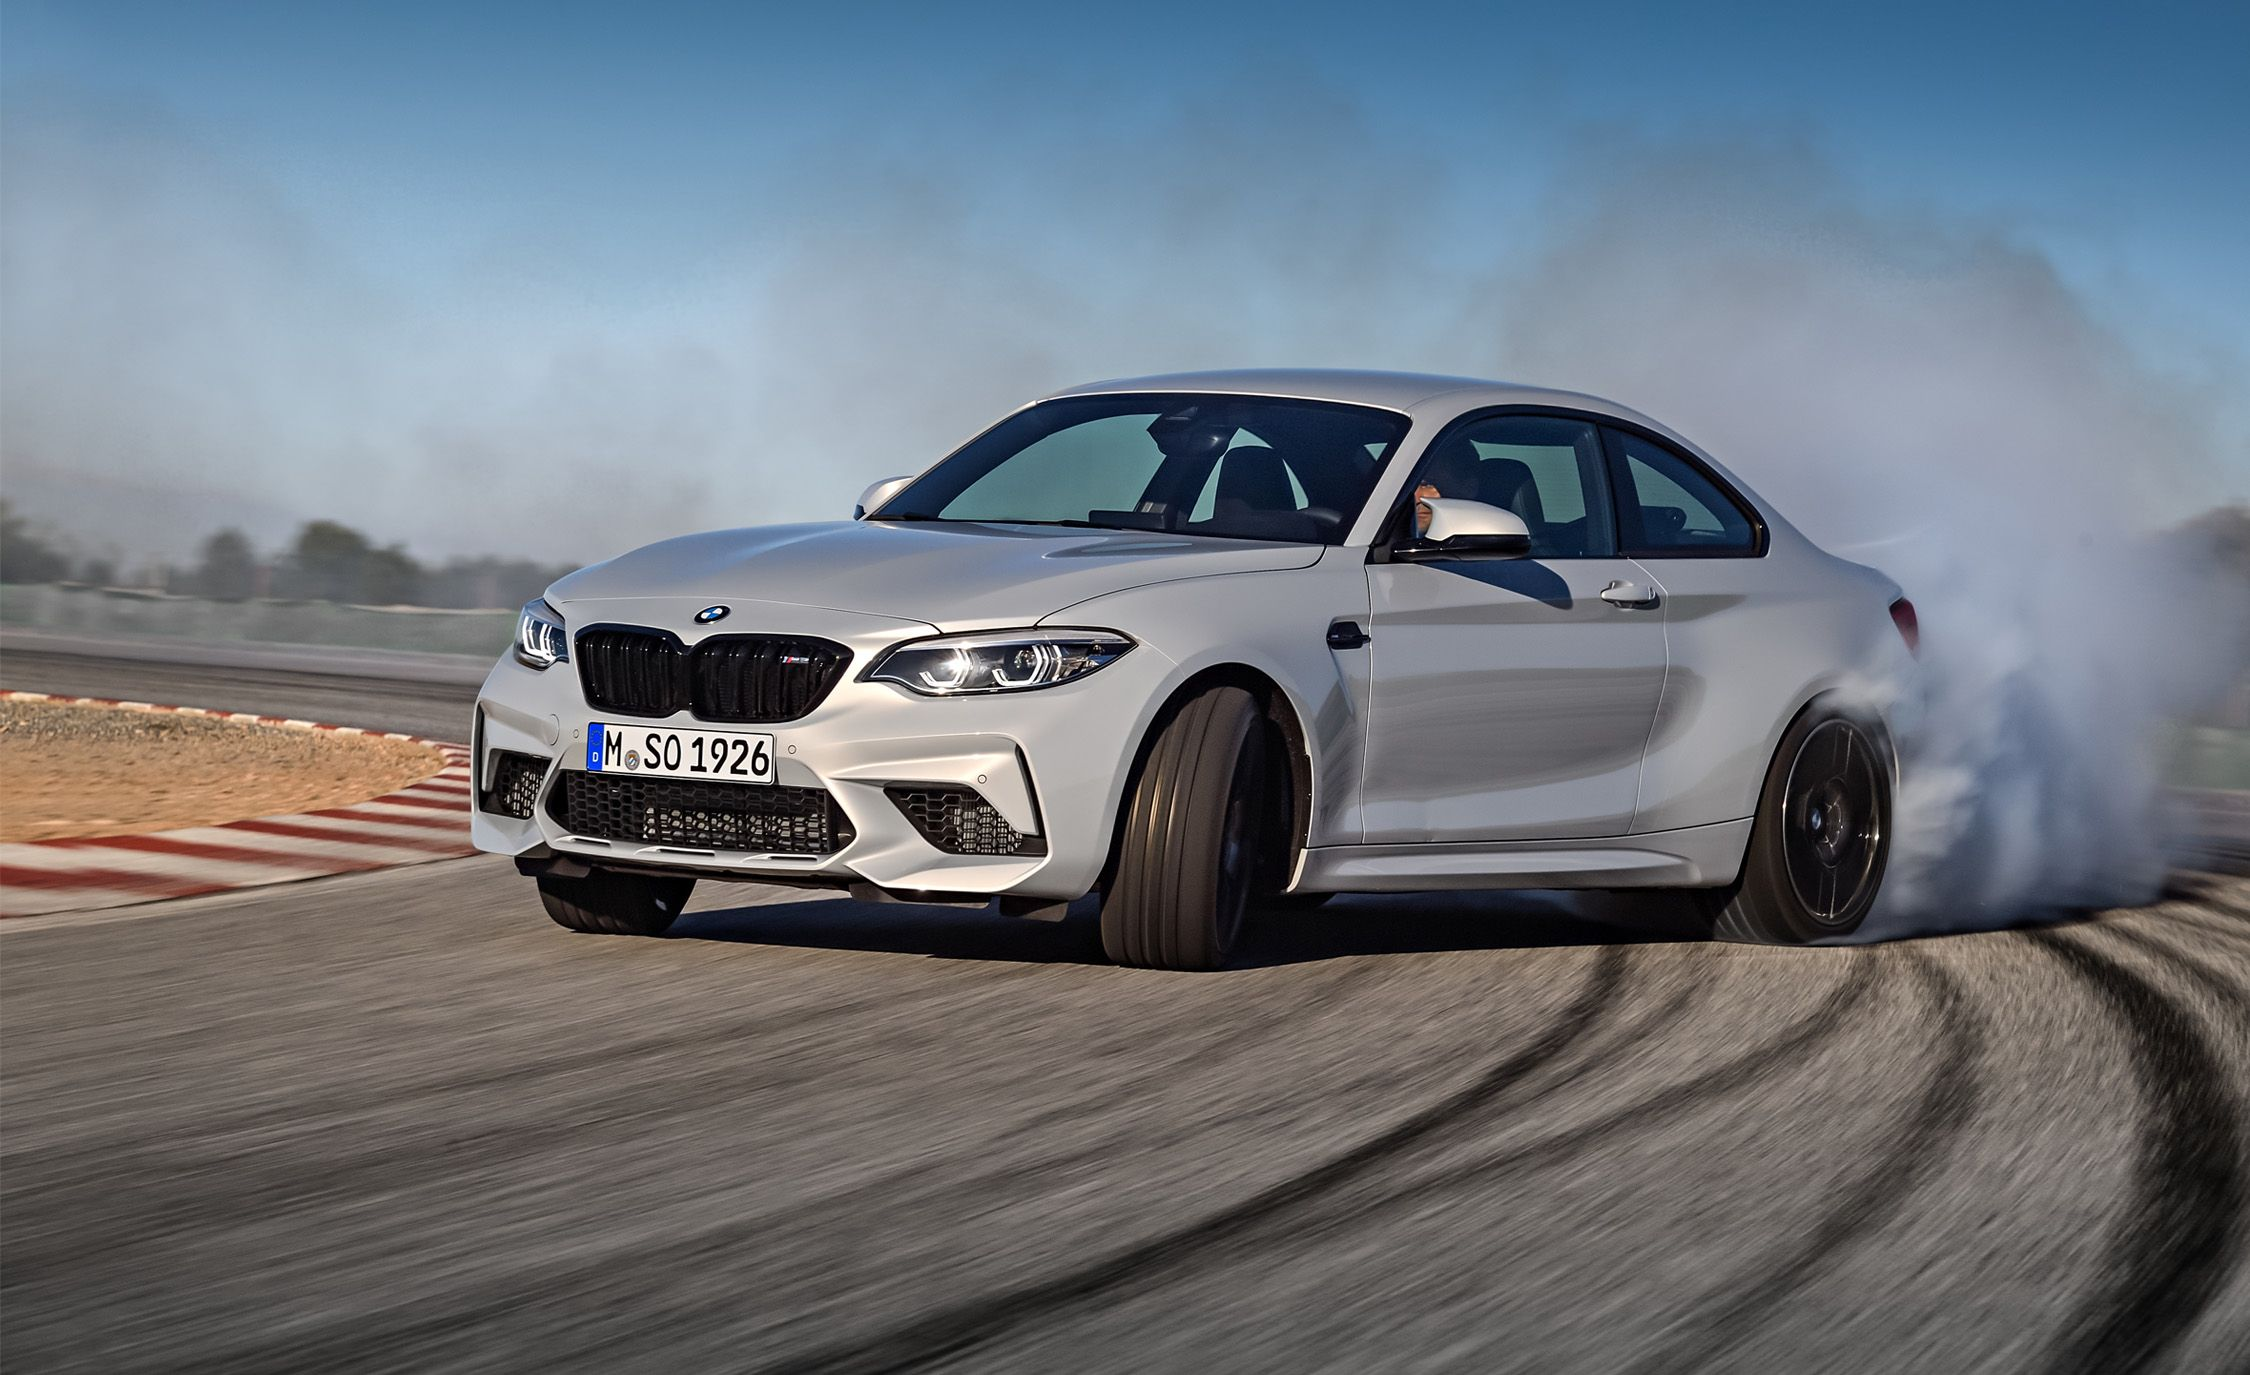 Comments on: 2019 BMW M2 Competition: Faster, Stiffer